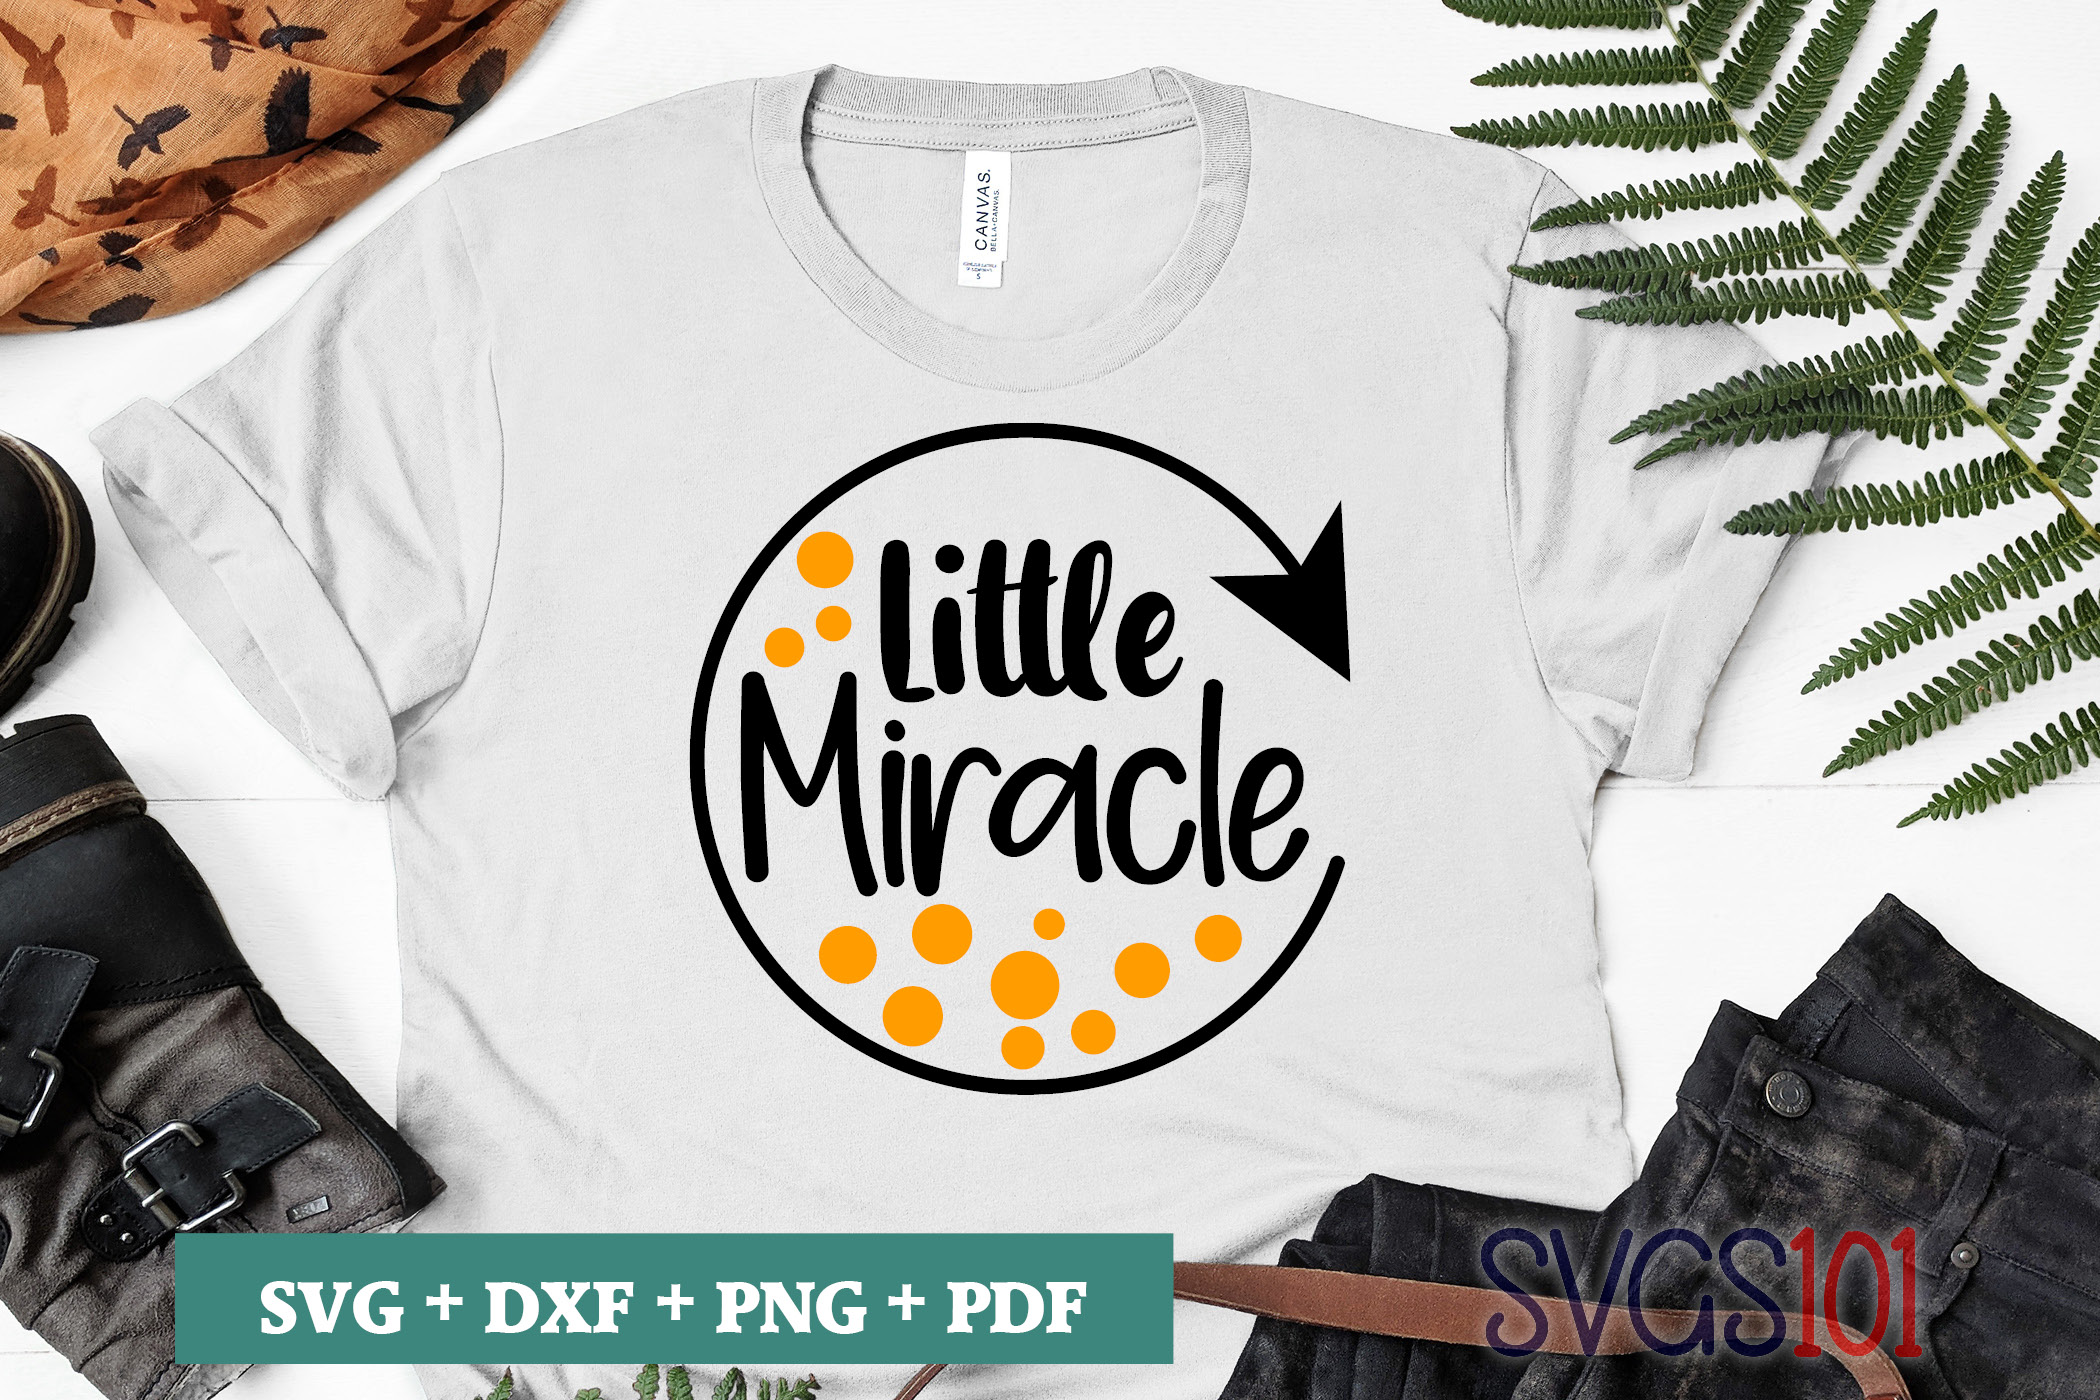 Little Miracle Svg Cut File Graphic By Svgs101 Creative Fabrica